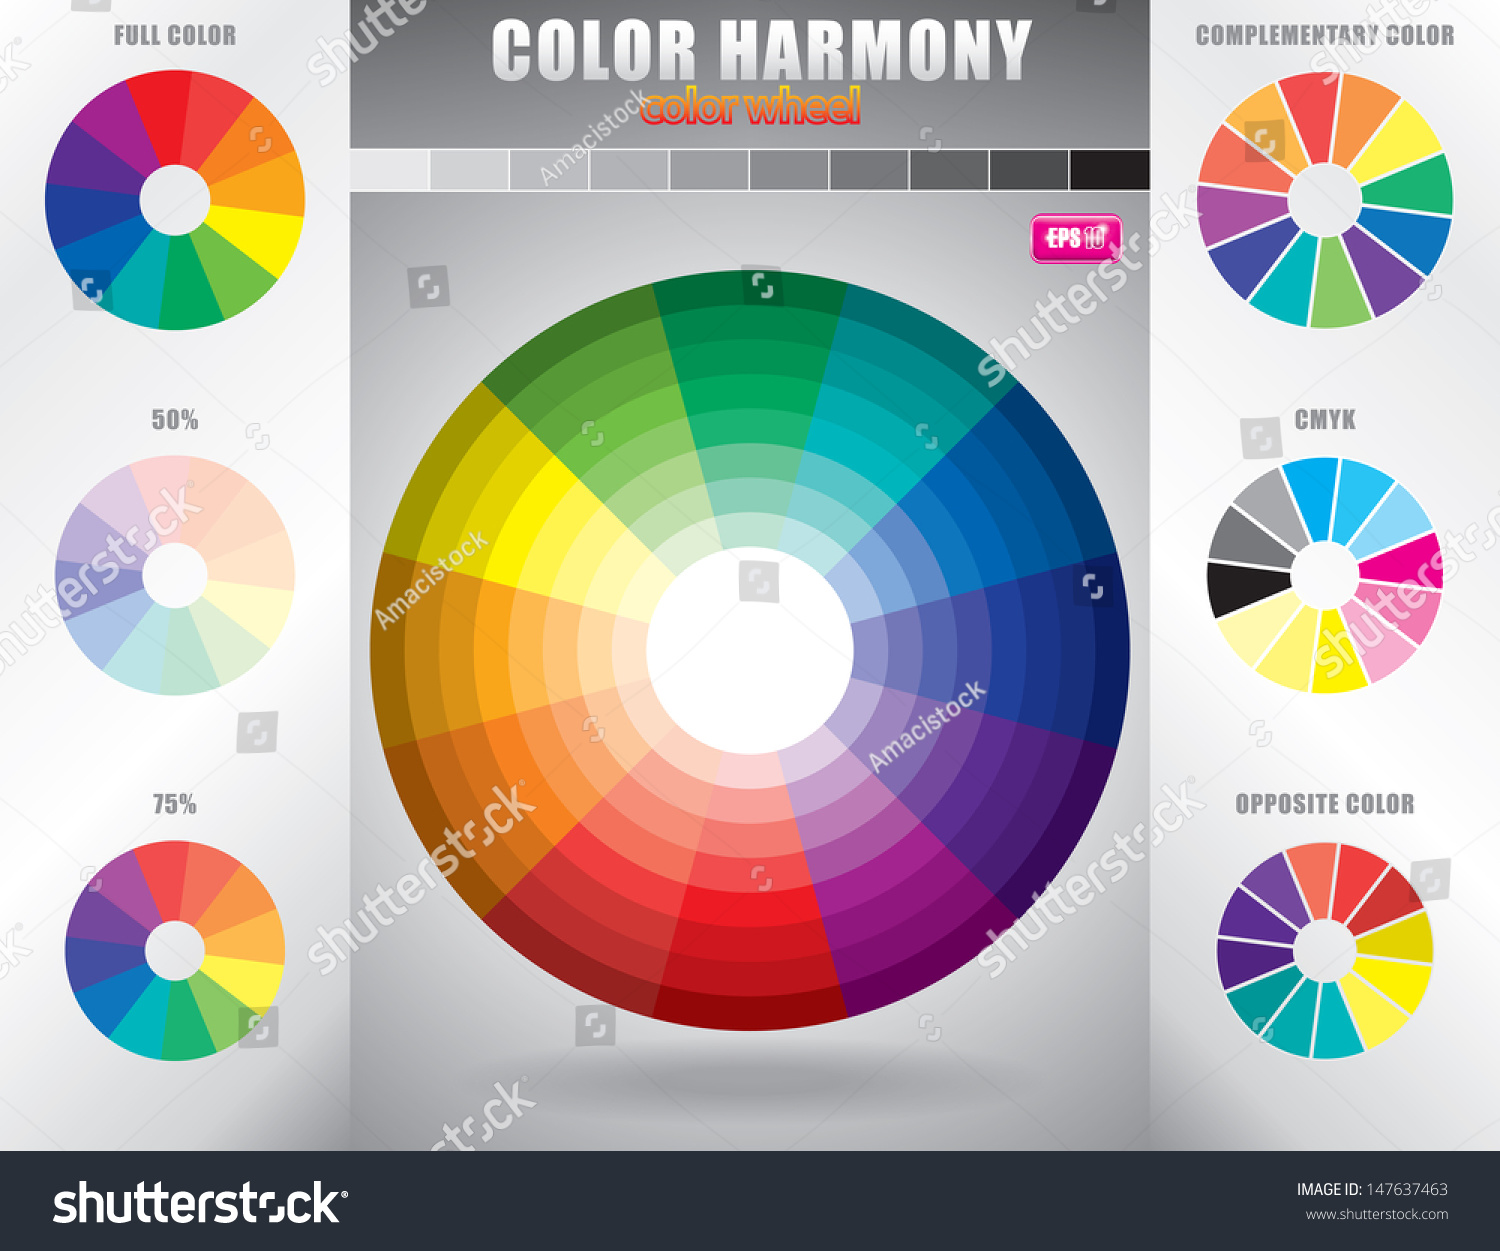 Color harmony Color wheel with shade